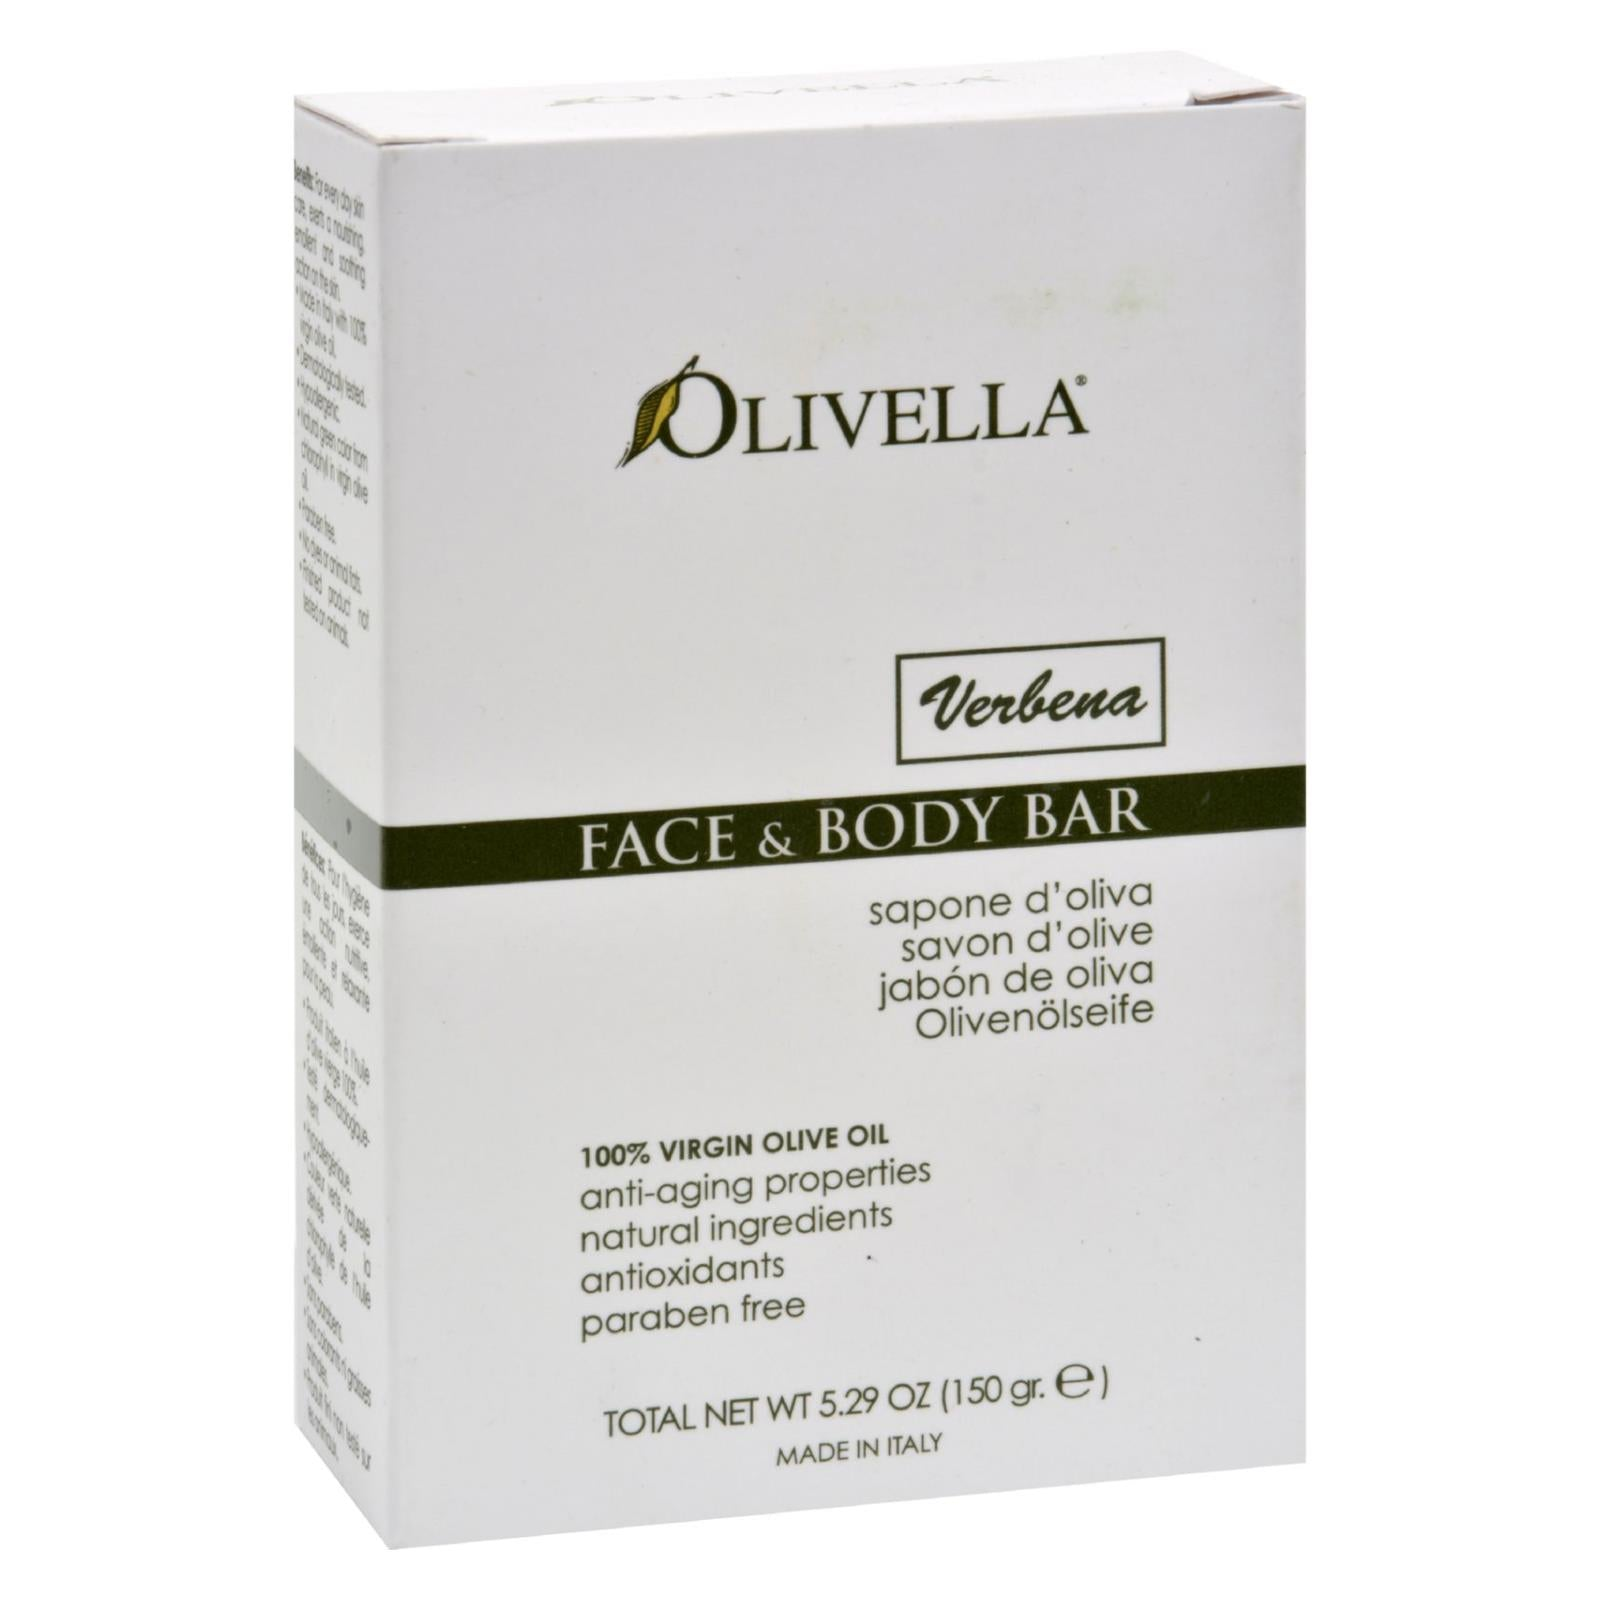 Buy Olivella Face and Body Bar Verbena - 5.29 oz - Cleansers from Veroeco.com